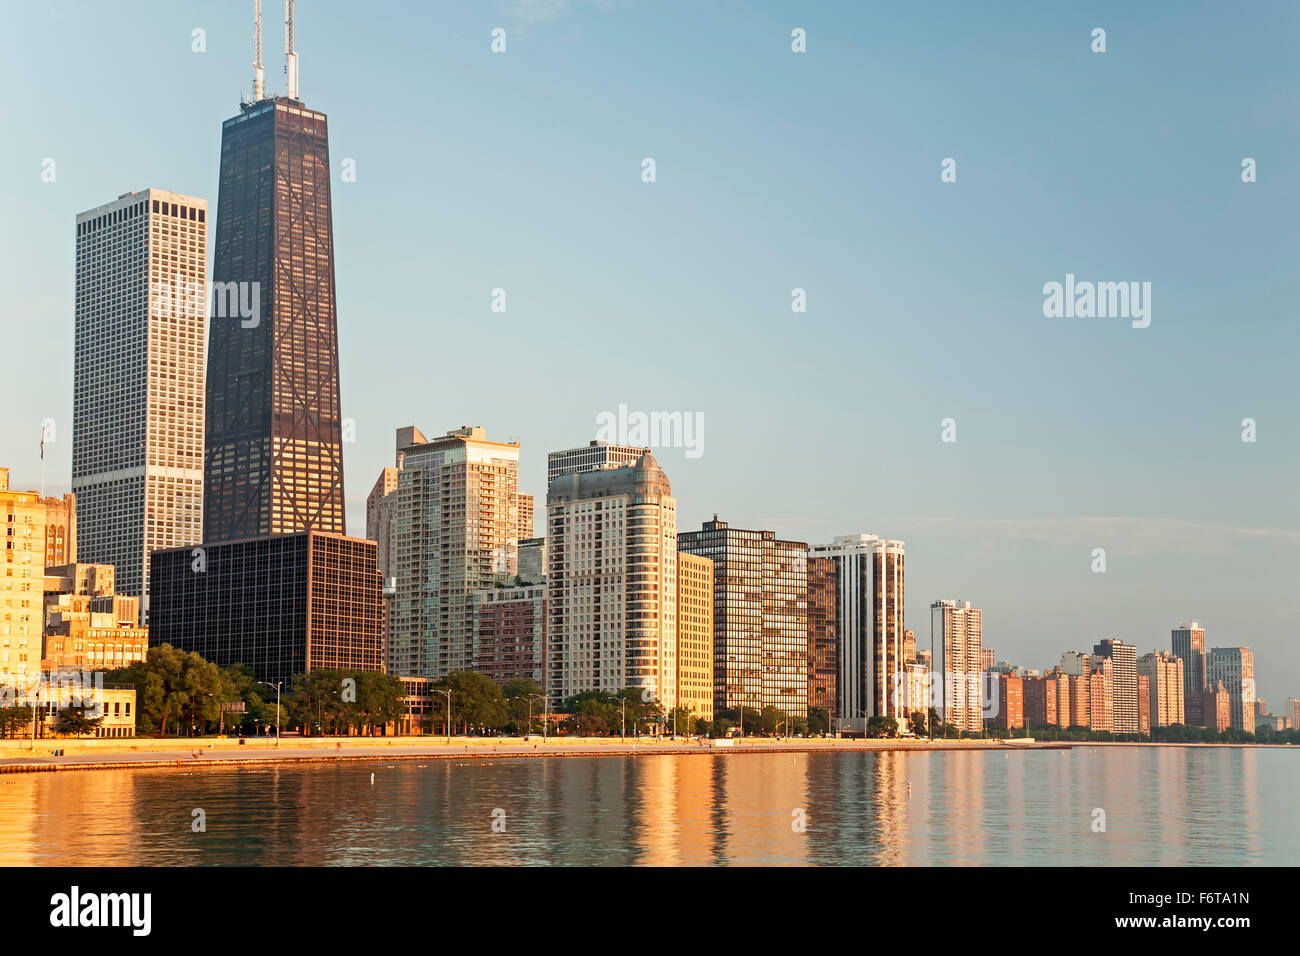 875 N. Michigan Avenue, formerly known as Hancock Tower Center (tallest), skyline and Lake Michigan, Chicago, Illinois - Stock Image